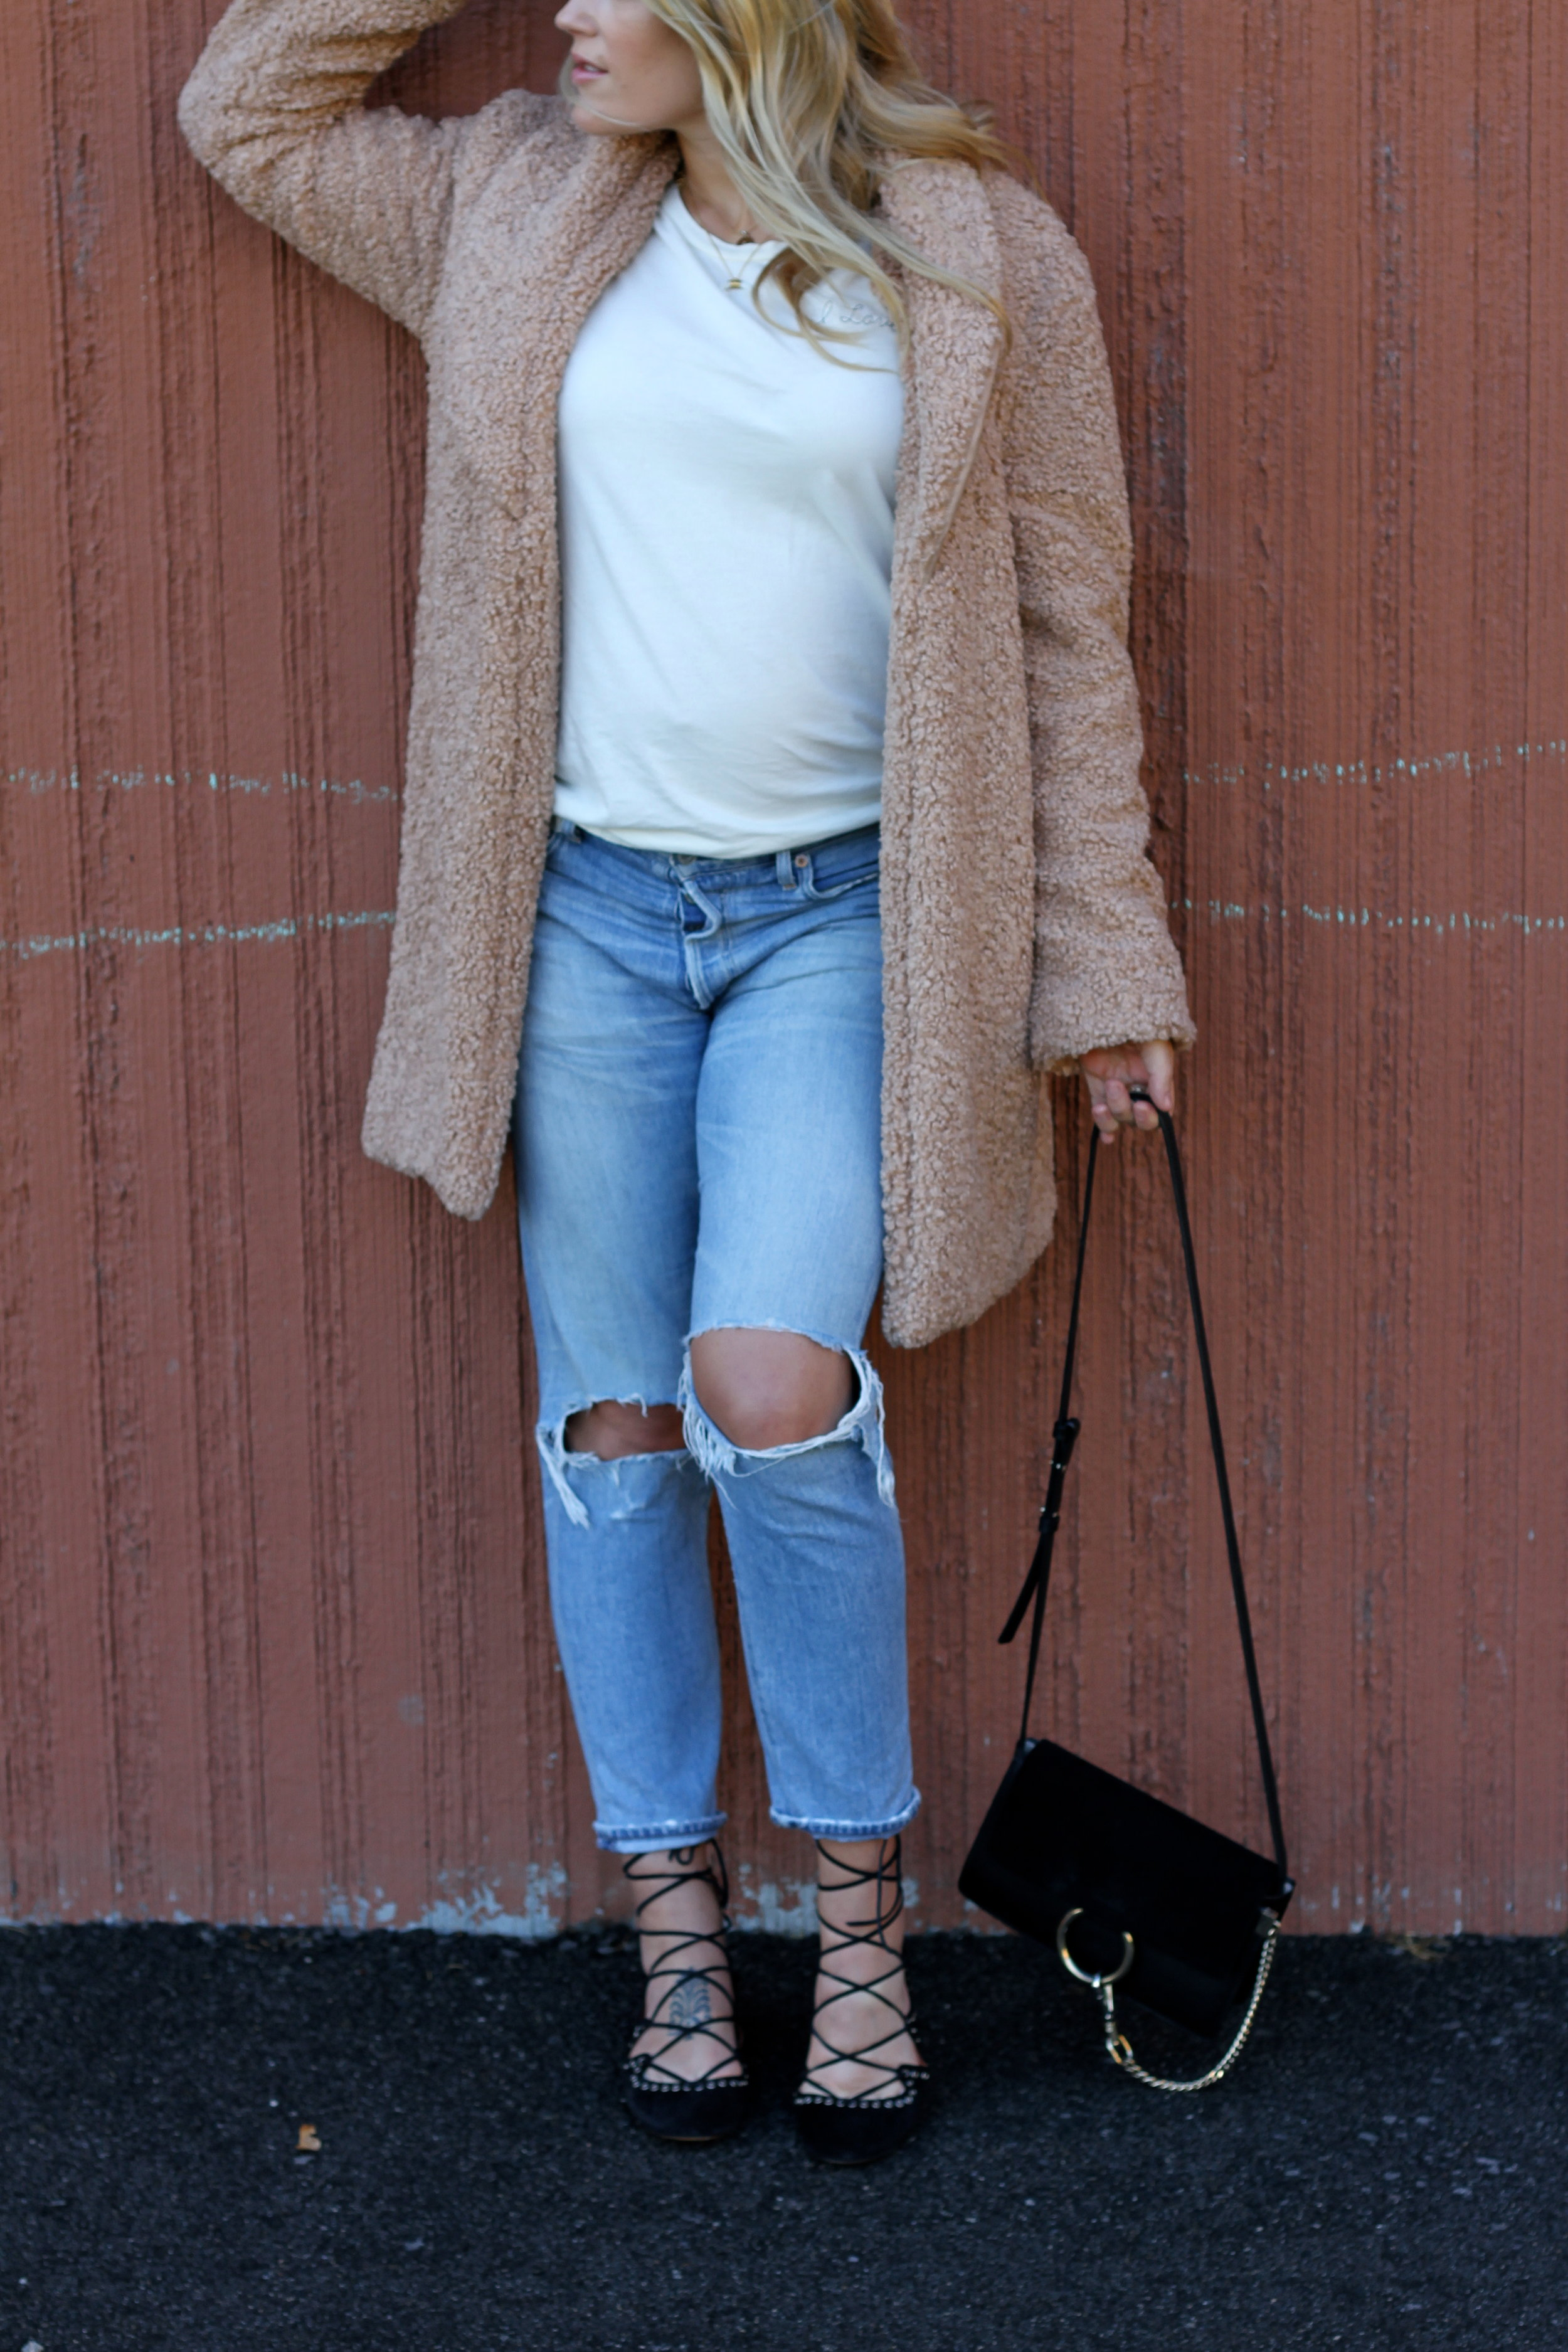 Pink Teddy Coat and Ripped Jeans.